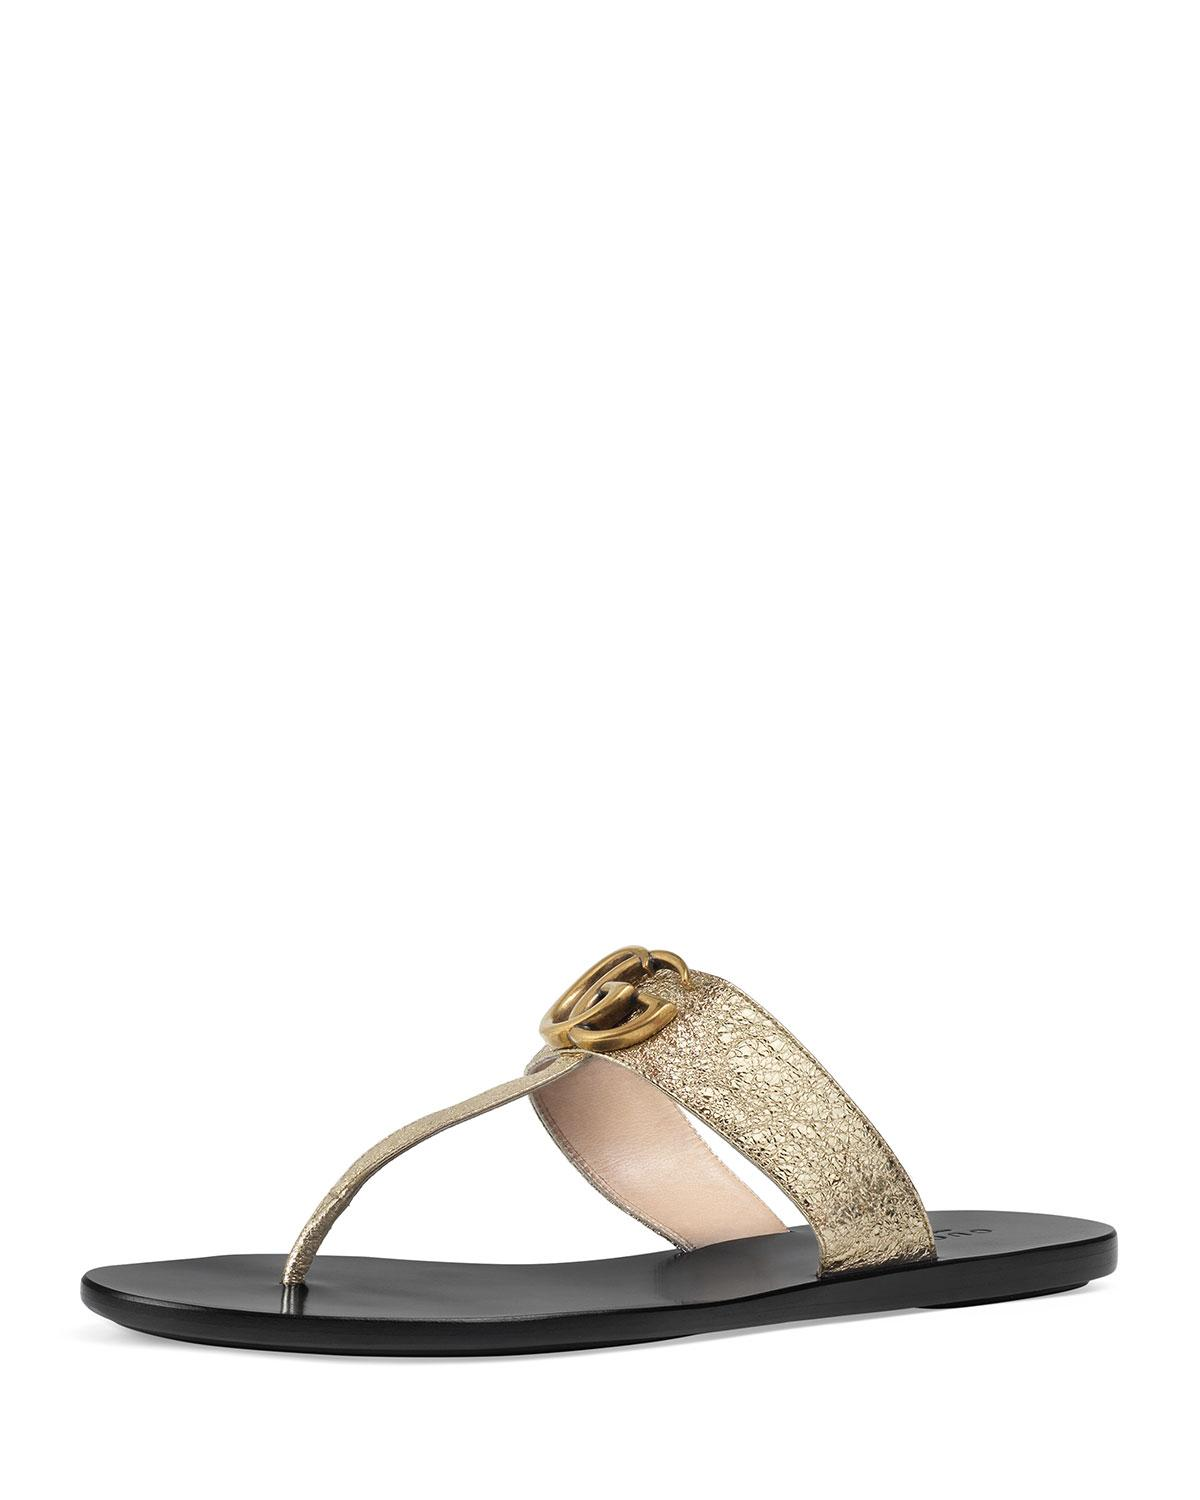 0be2c089200 Lyst - Gucci Gold Double G Leather Thong Sandal. in Metallic - Save 13%